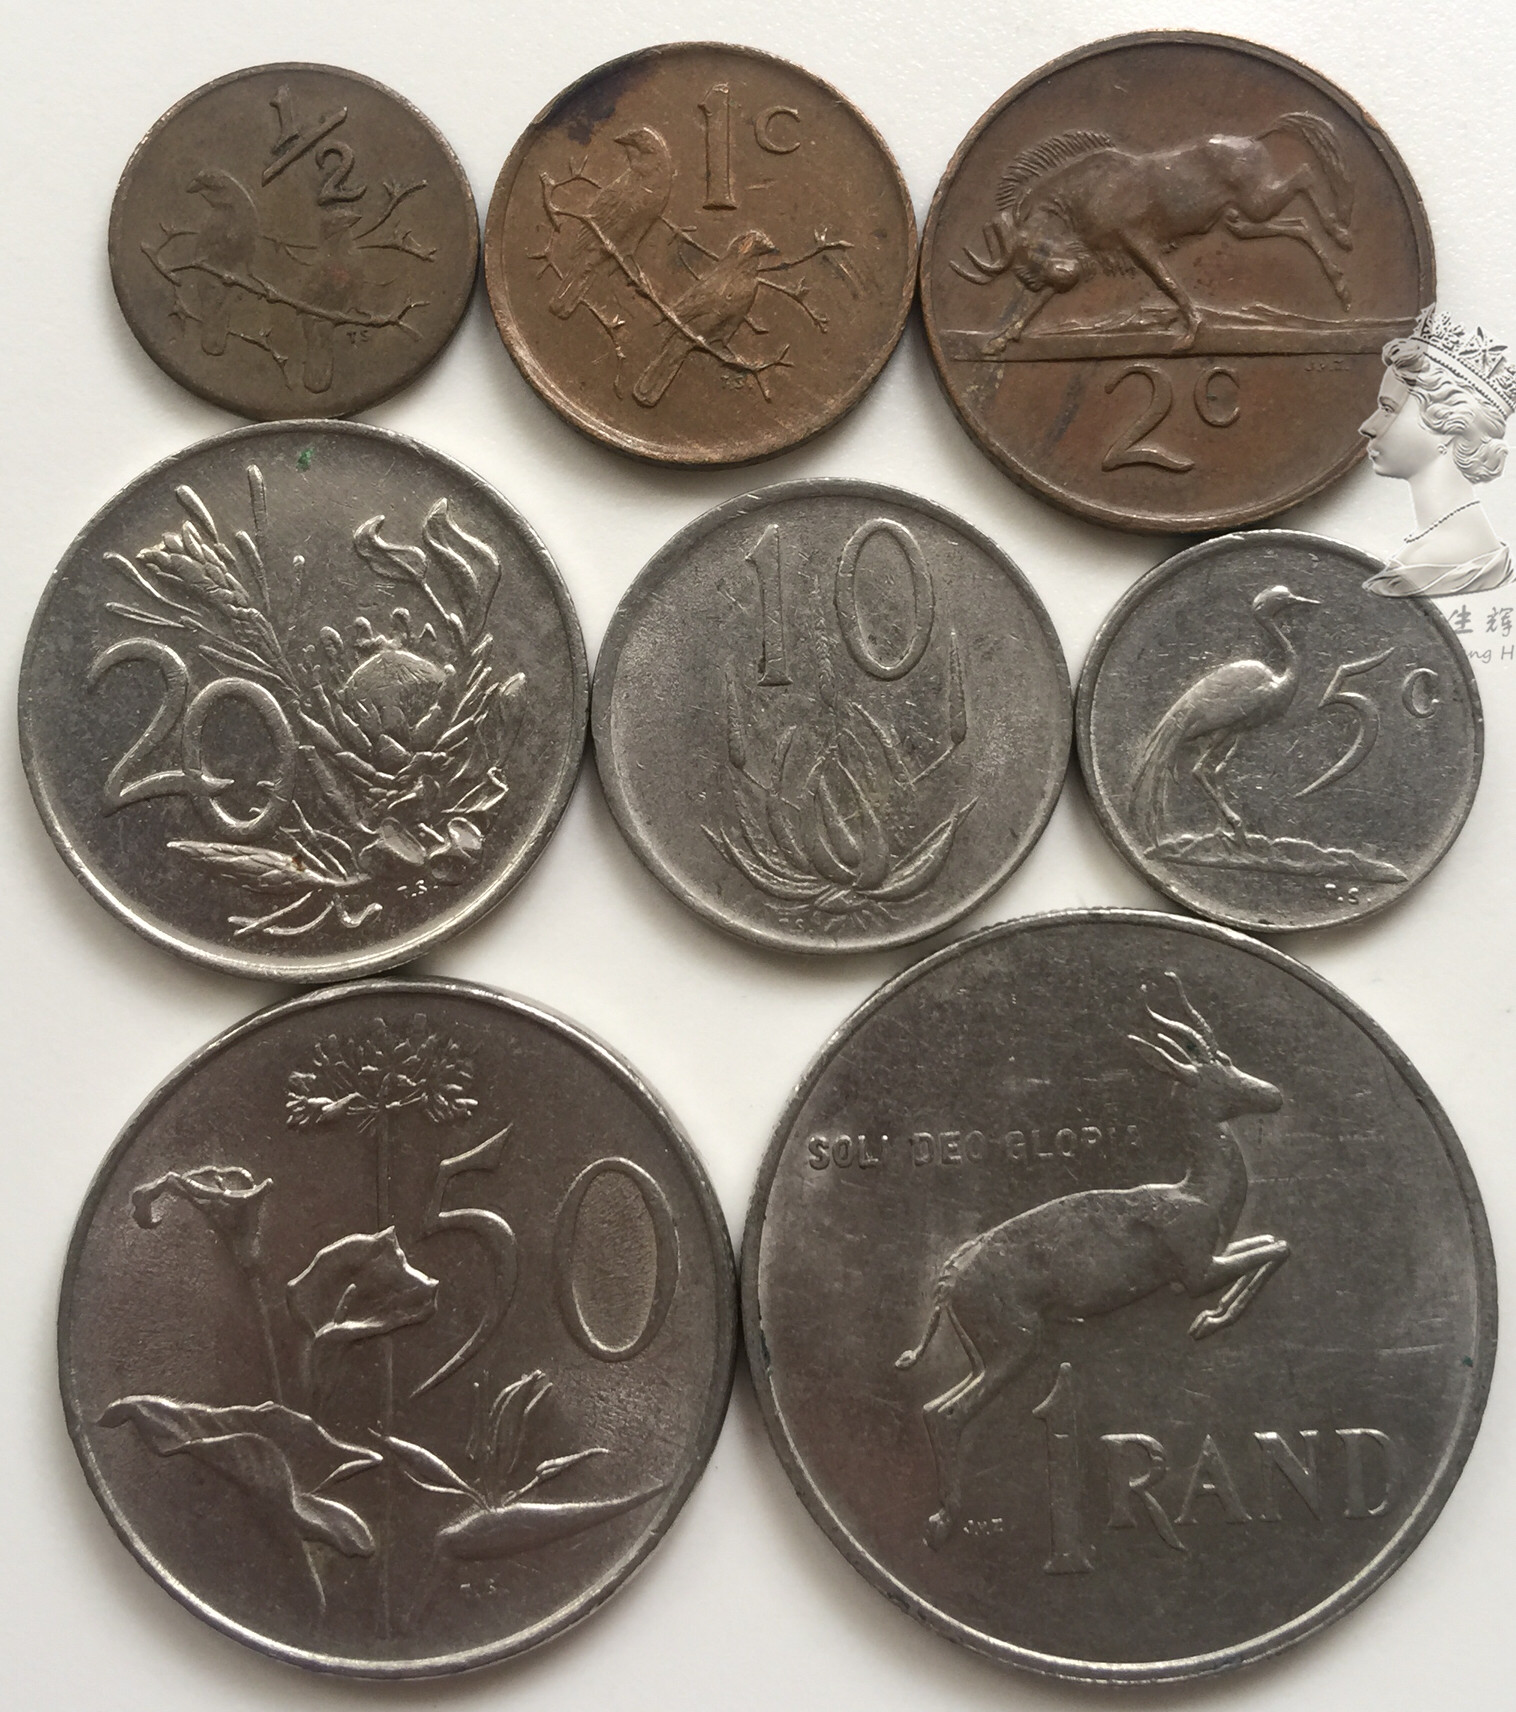 Set 8pcs South Africa Coins Sets Old Edition Africa 100